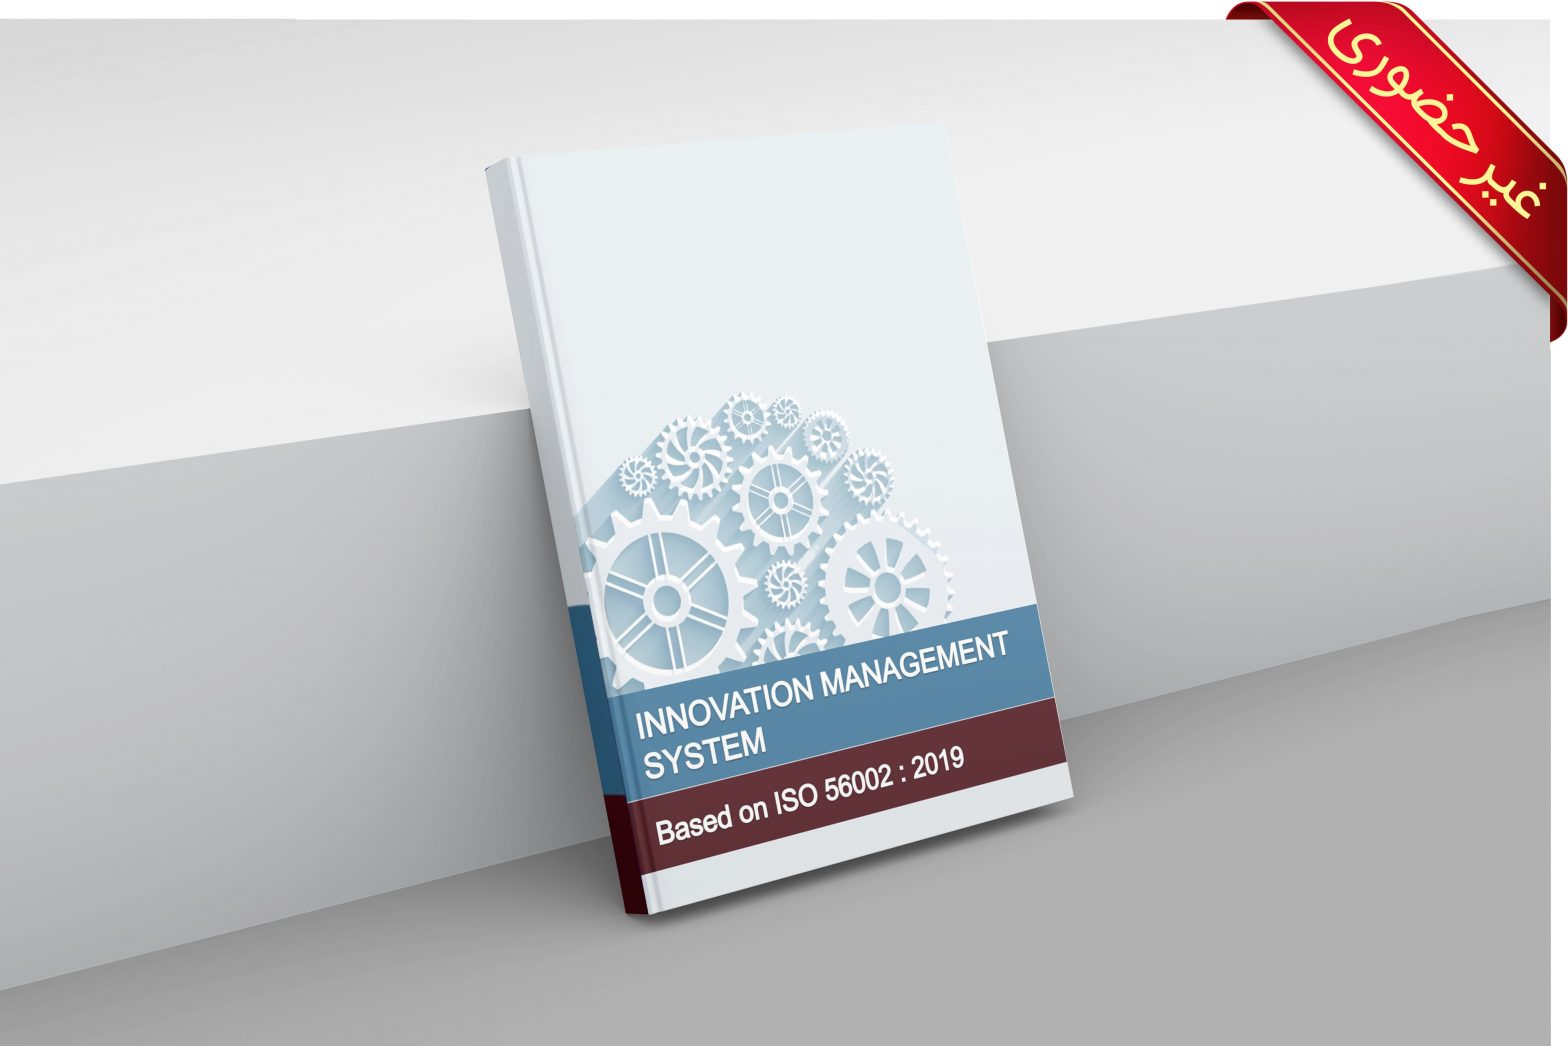 Innovation Management Systems based on ISO 56002